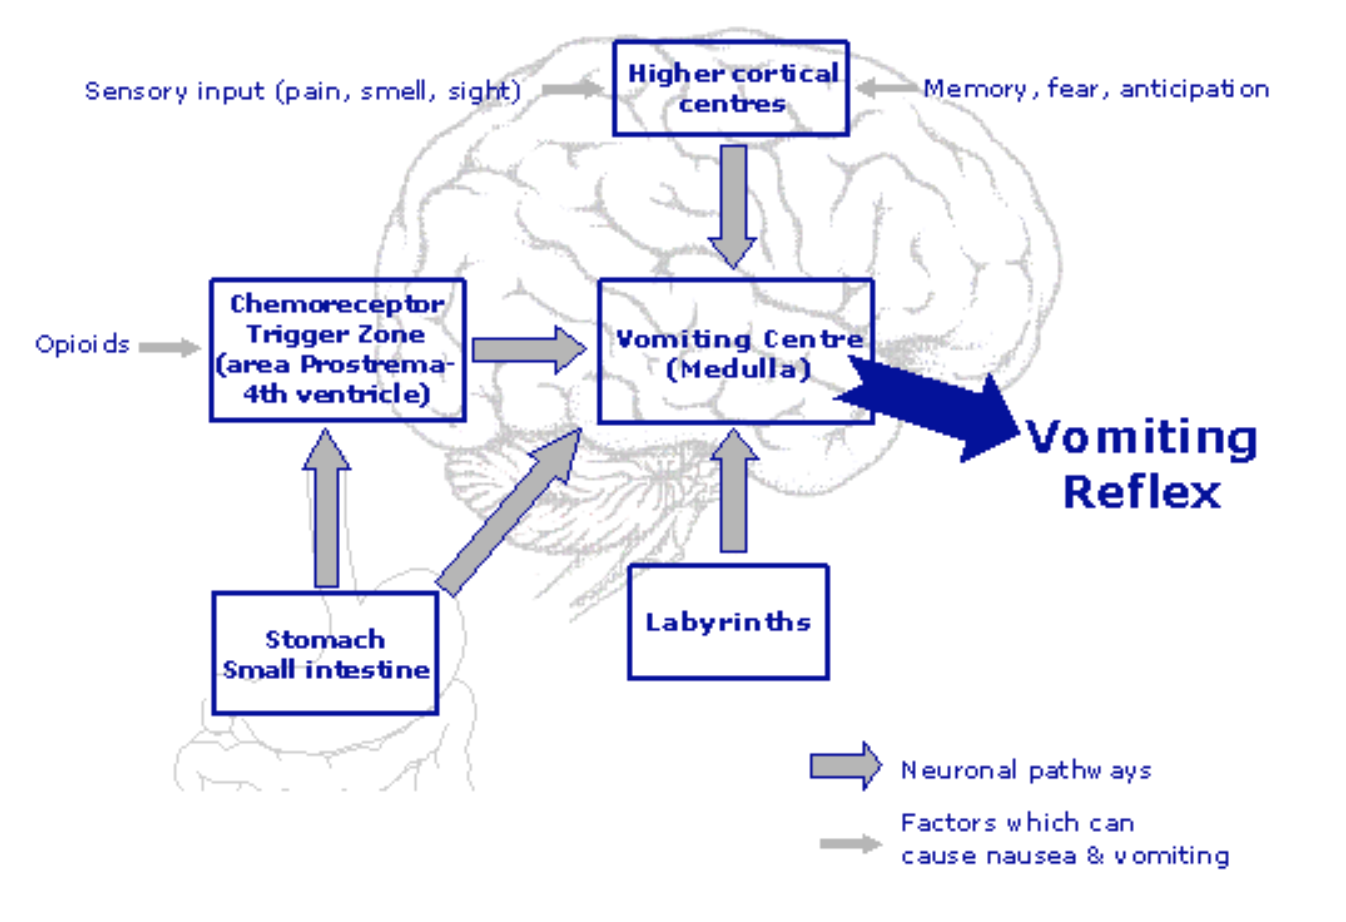 Inter-facility Considerations for Managing Nausea and VomitingNausea And Vomiting Mechanism